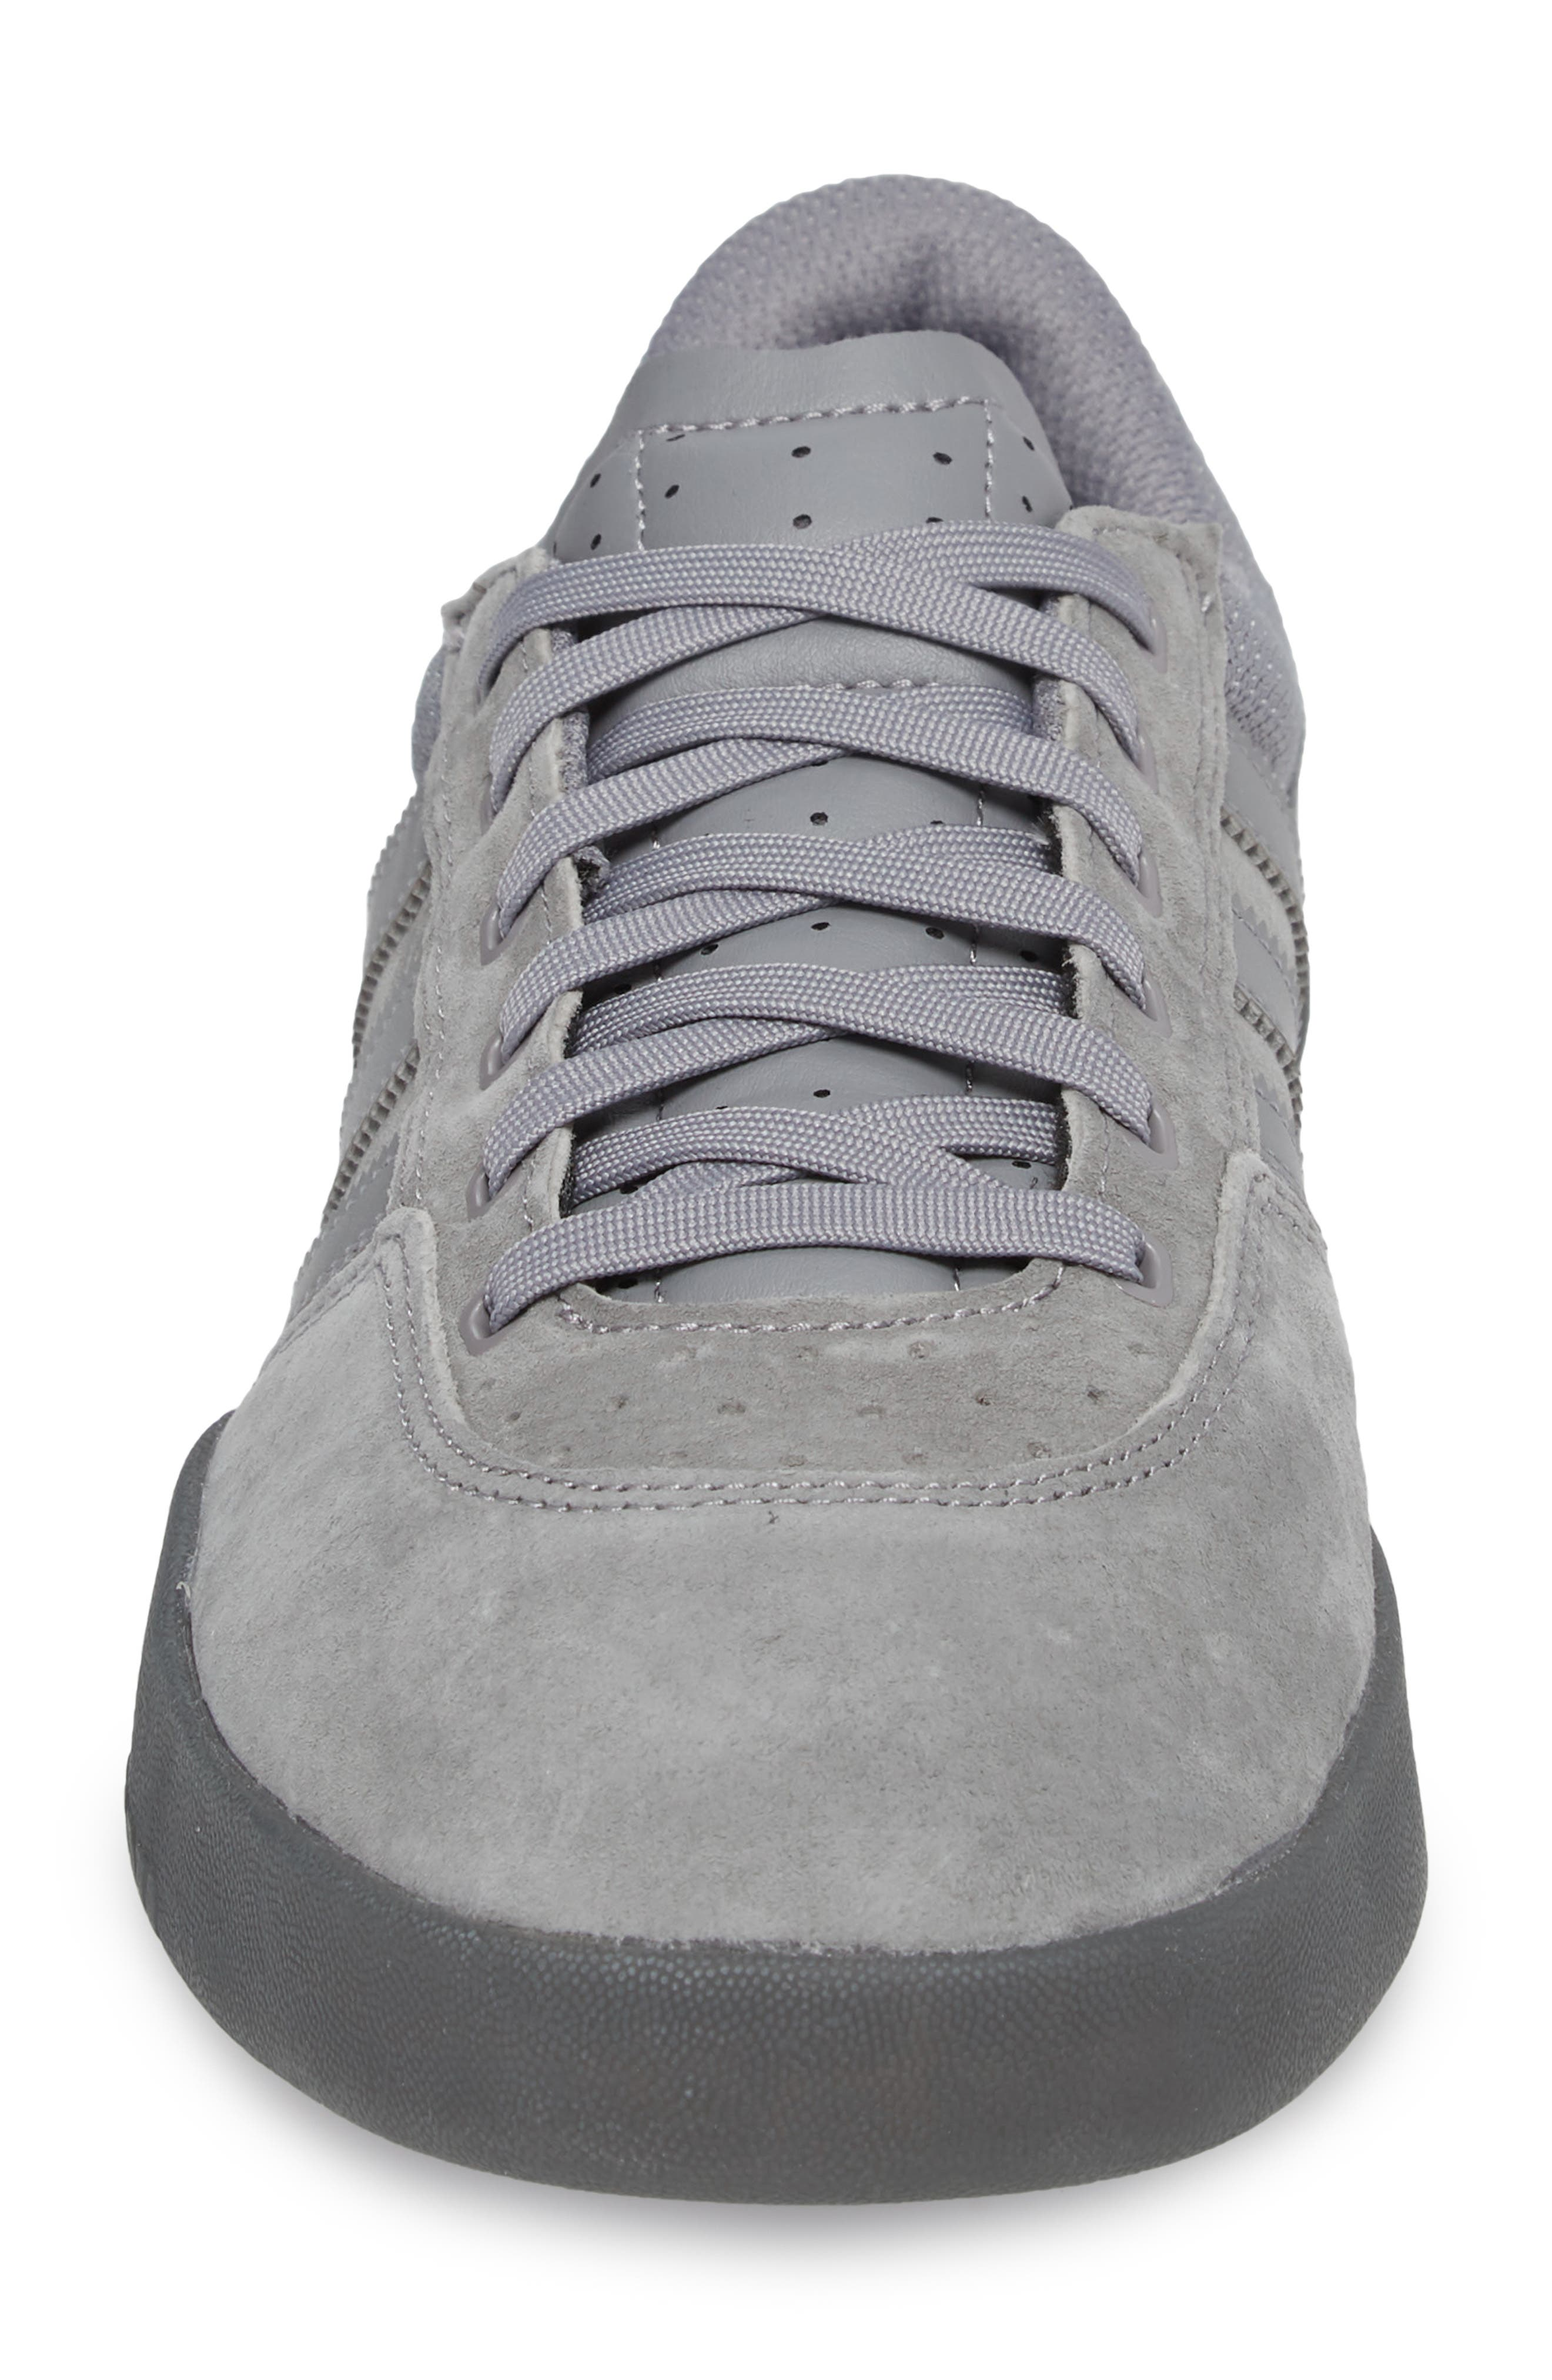 City Cup Sneaker,                             Alternate thumbnail 4, color,                             036